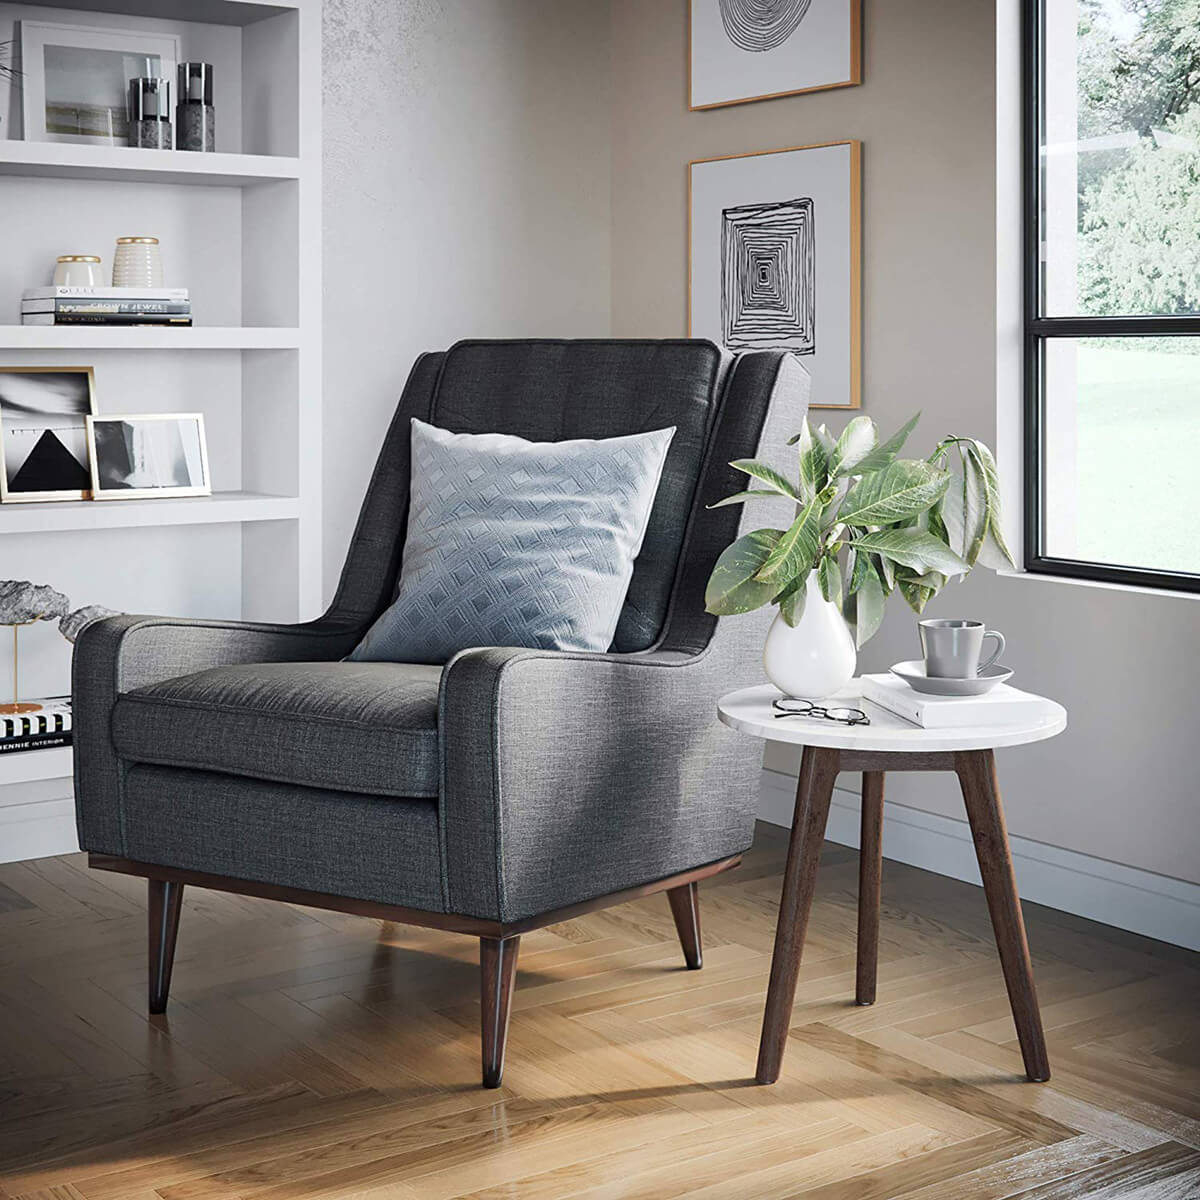 Choosing Furniture to Fit a Grouping